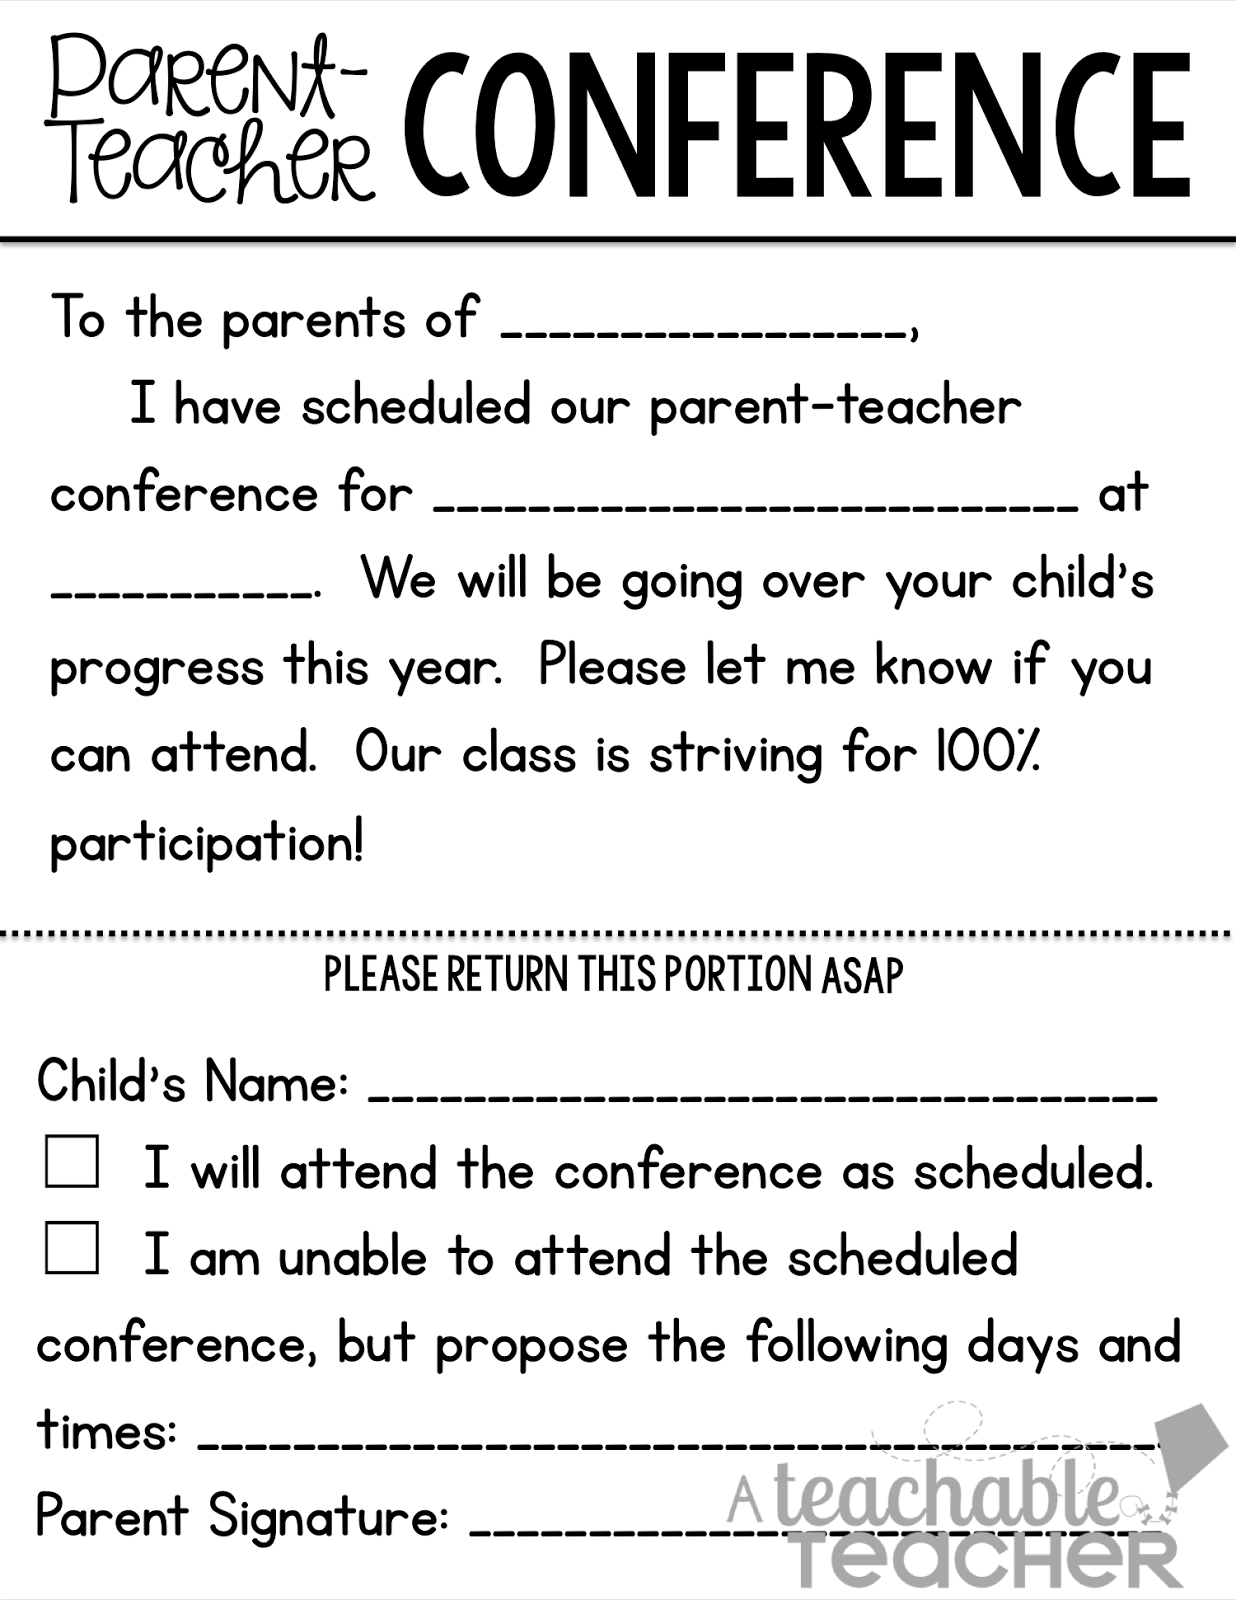 Parent teacher conference forms teacher conferences parents and a teachable teacher parent teacher conference tips and freebies linky party altavistaventures Gallery